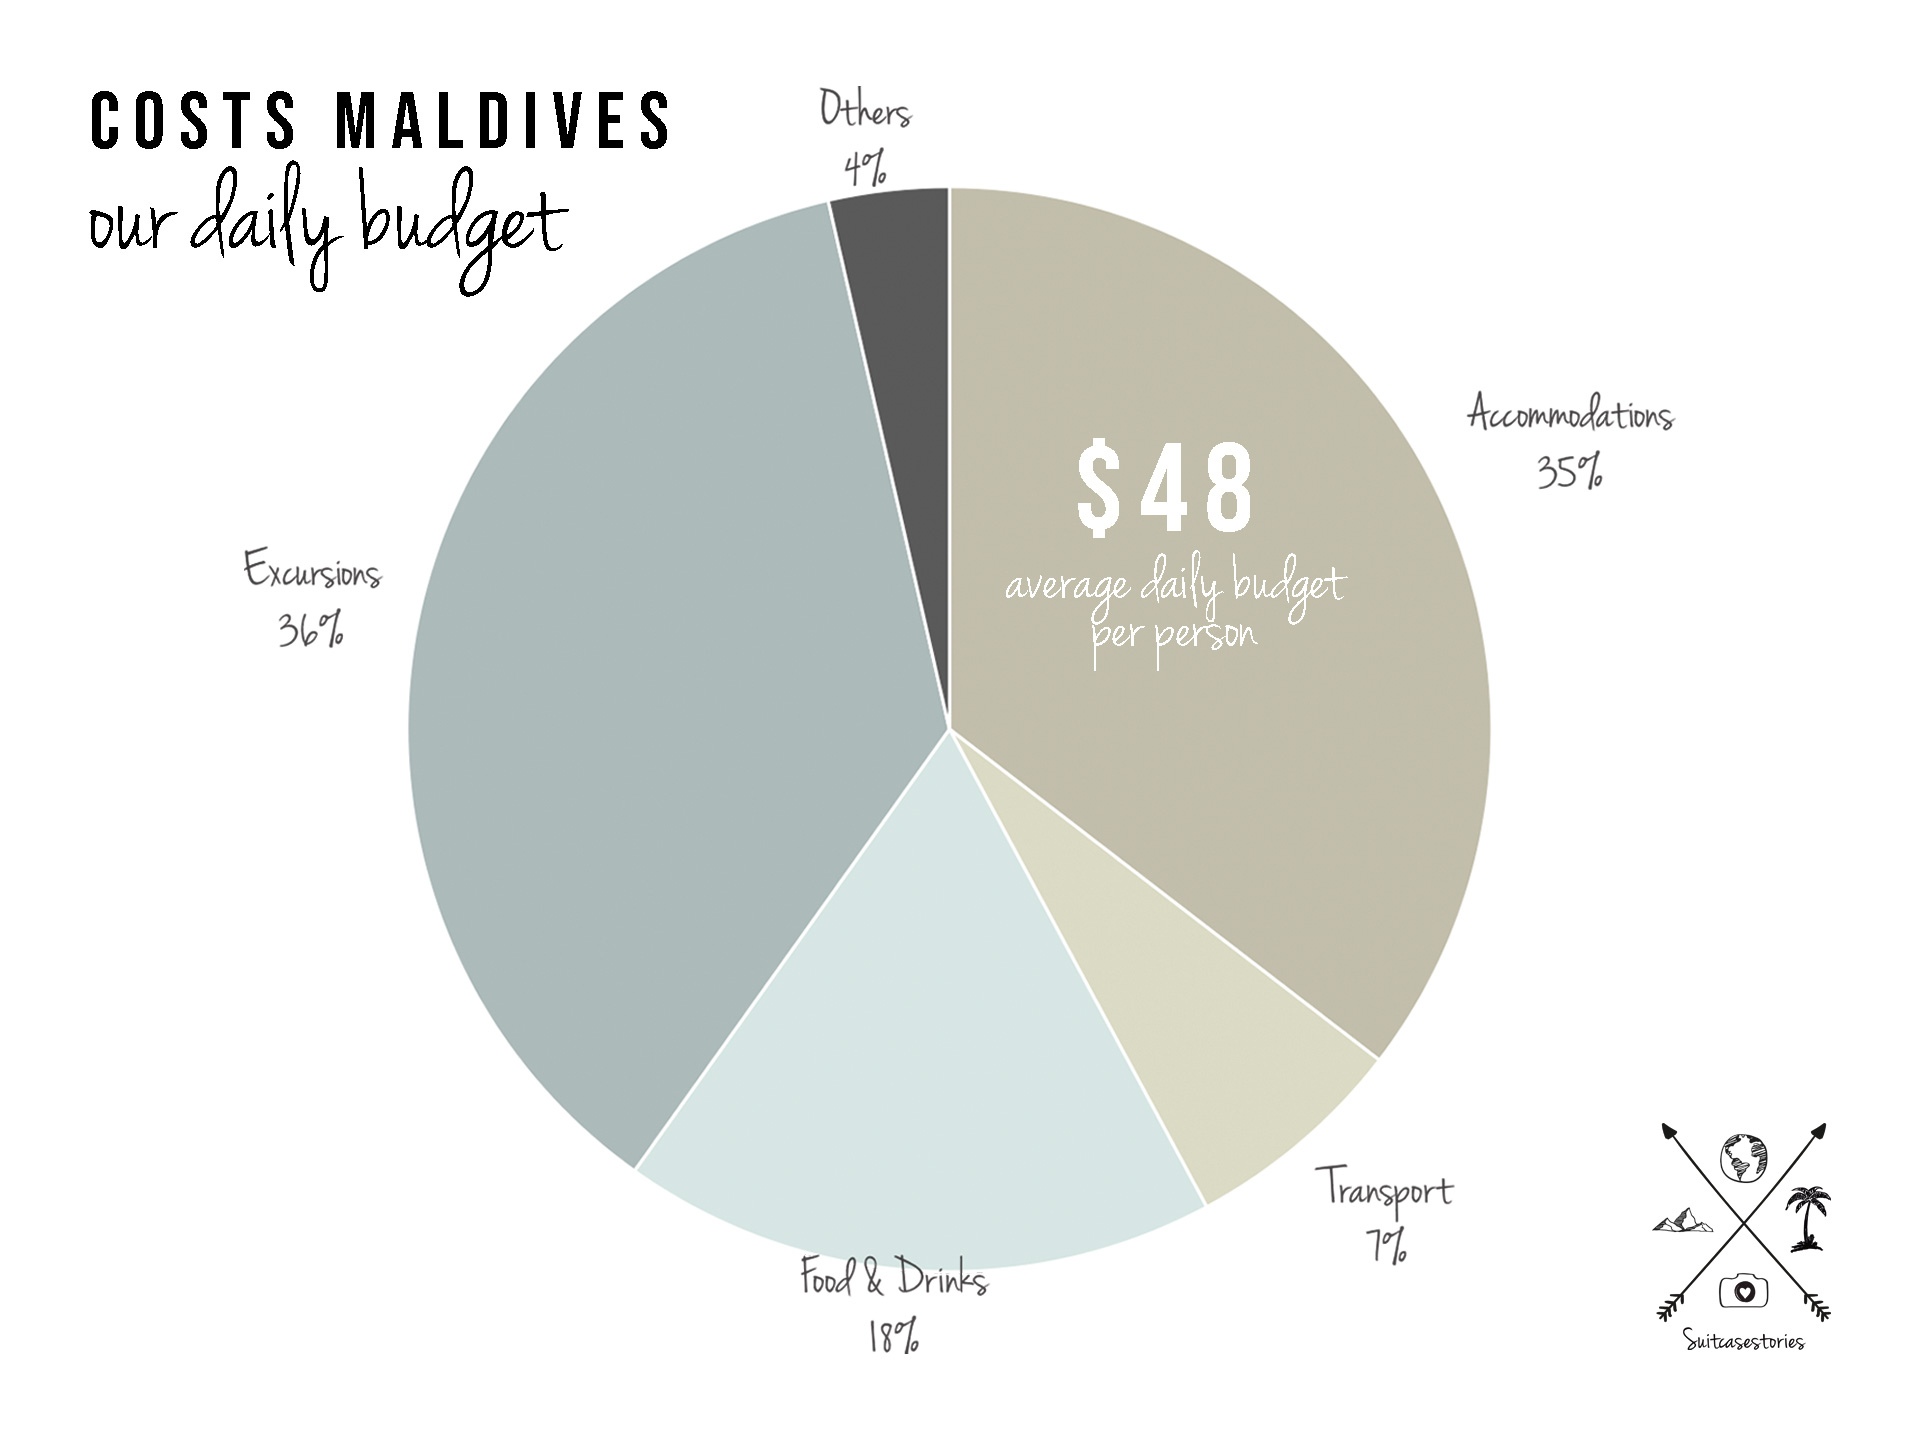 Costs Maldives our daily budget